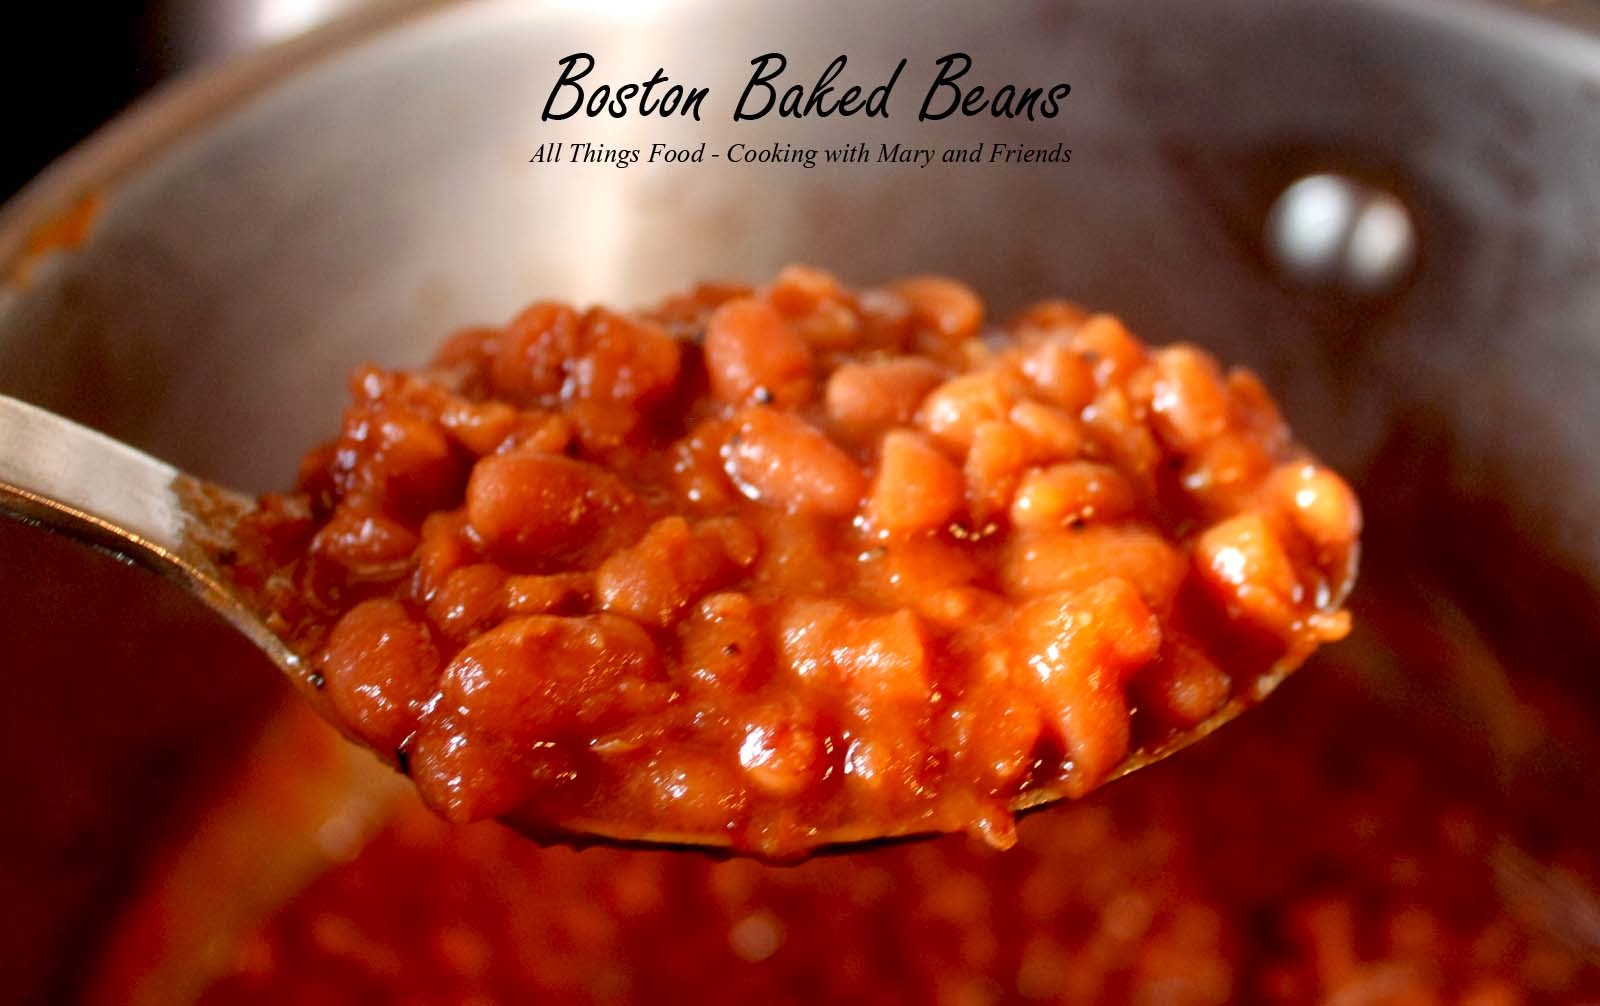 Cooking With Mary and Friends: Boston Baked Beans for pressure canning